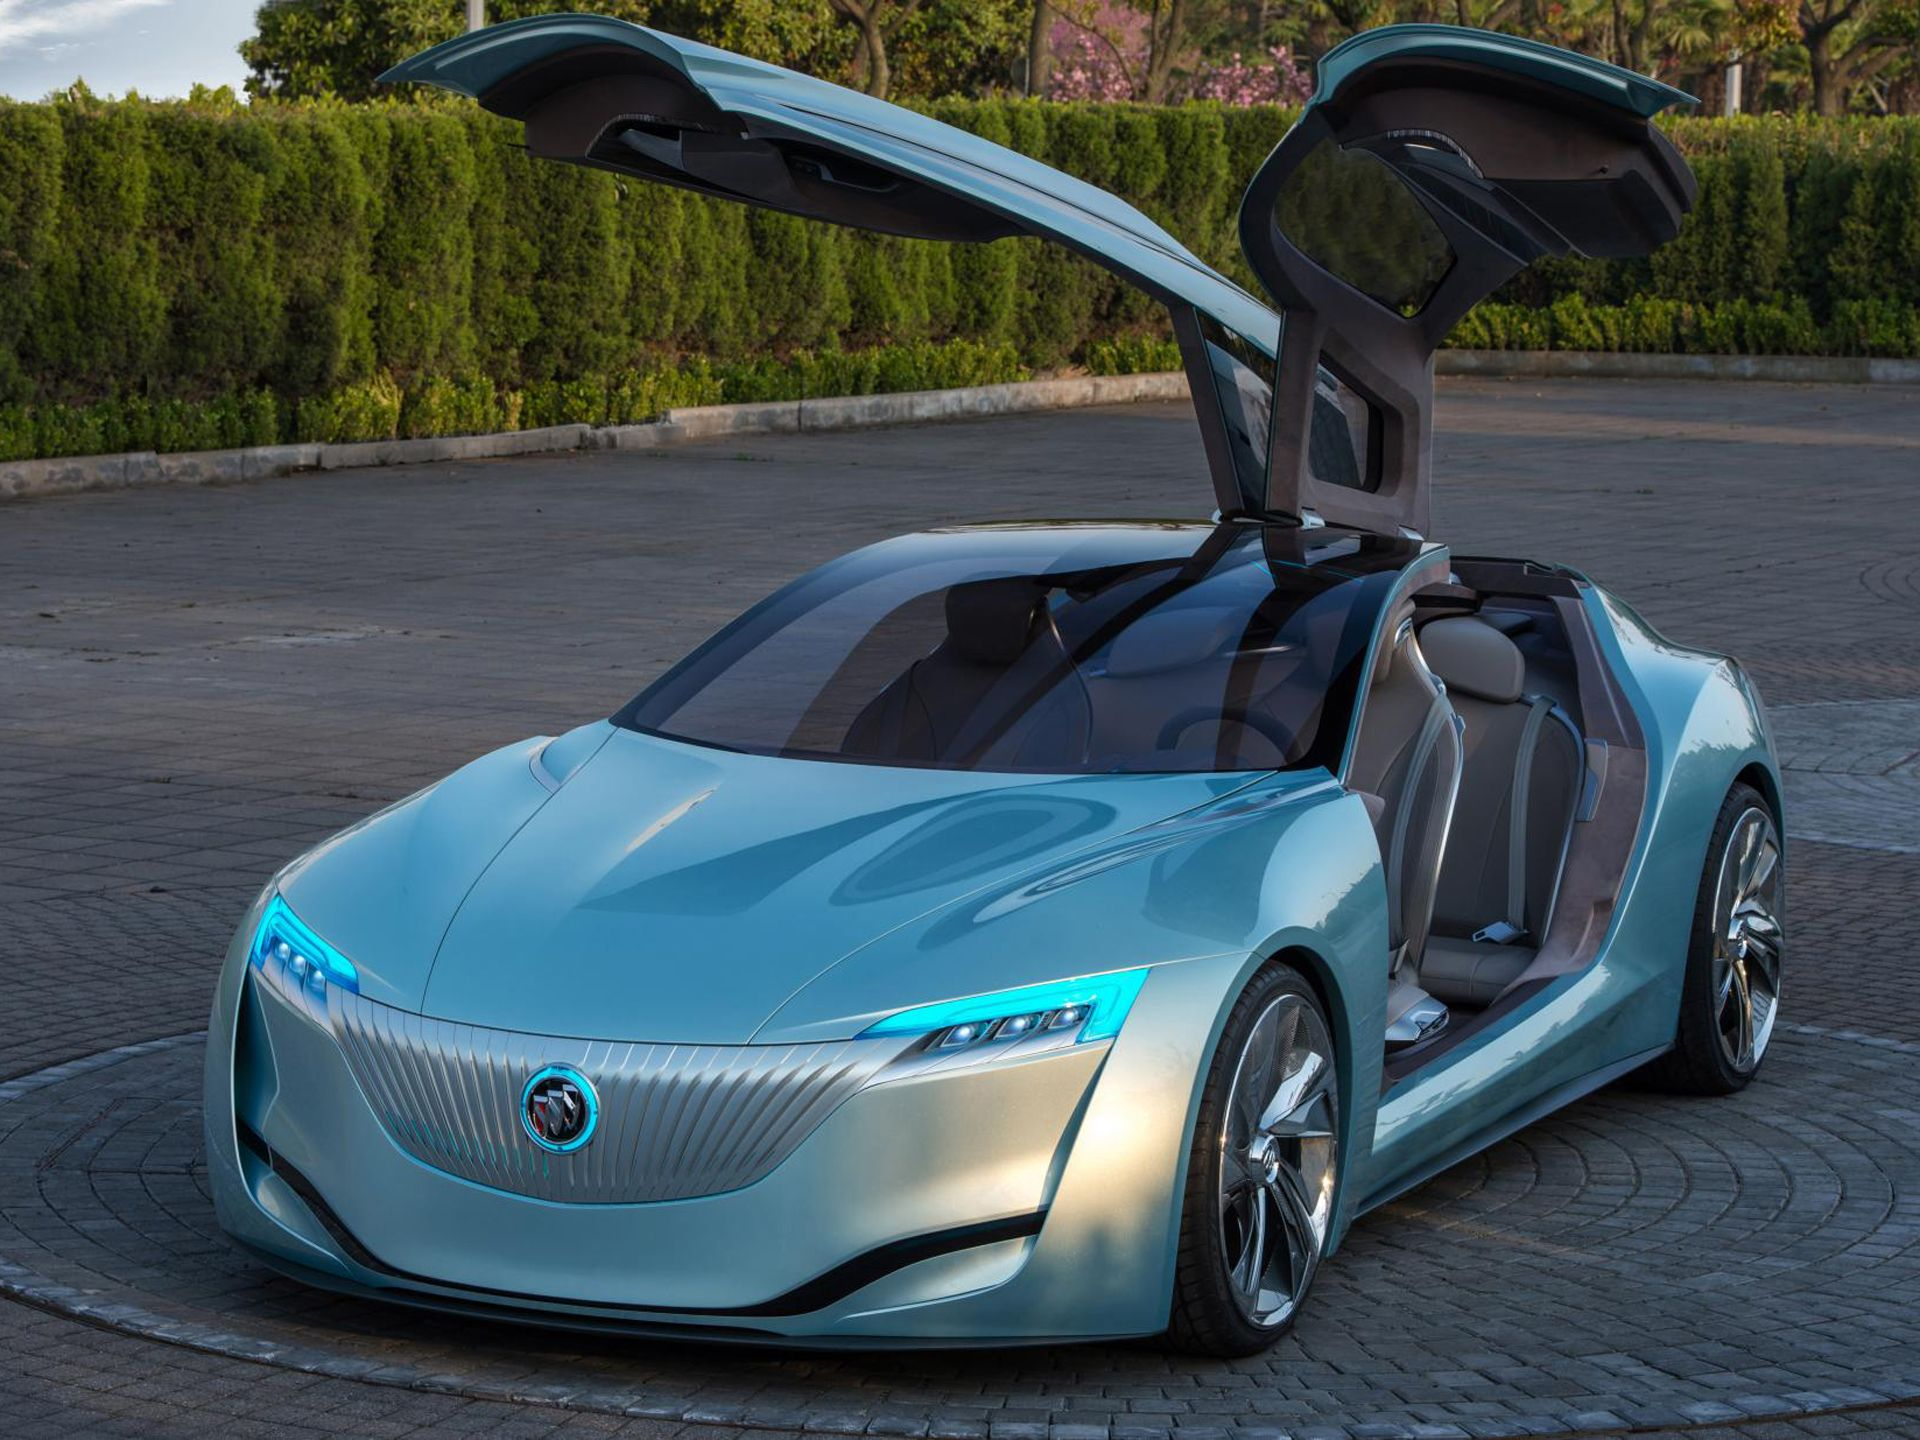 2013 Buick Riviera Coupe Concept Amcarguide Com